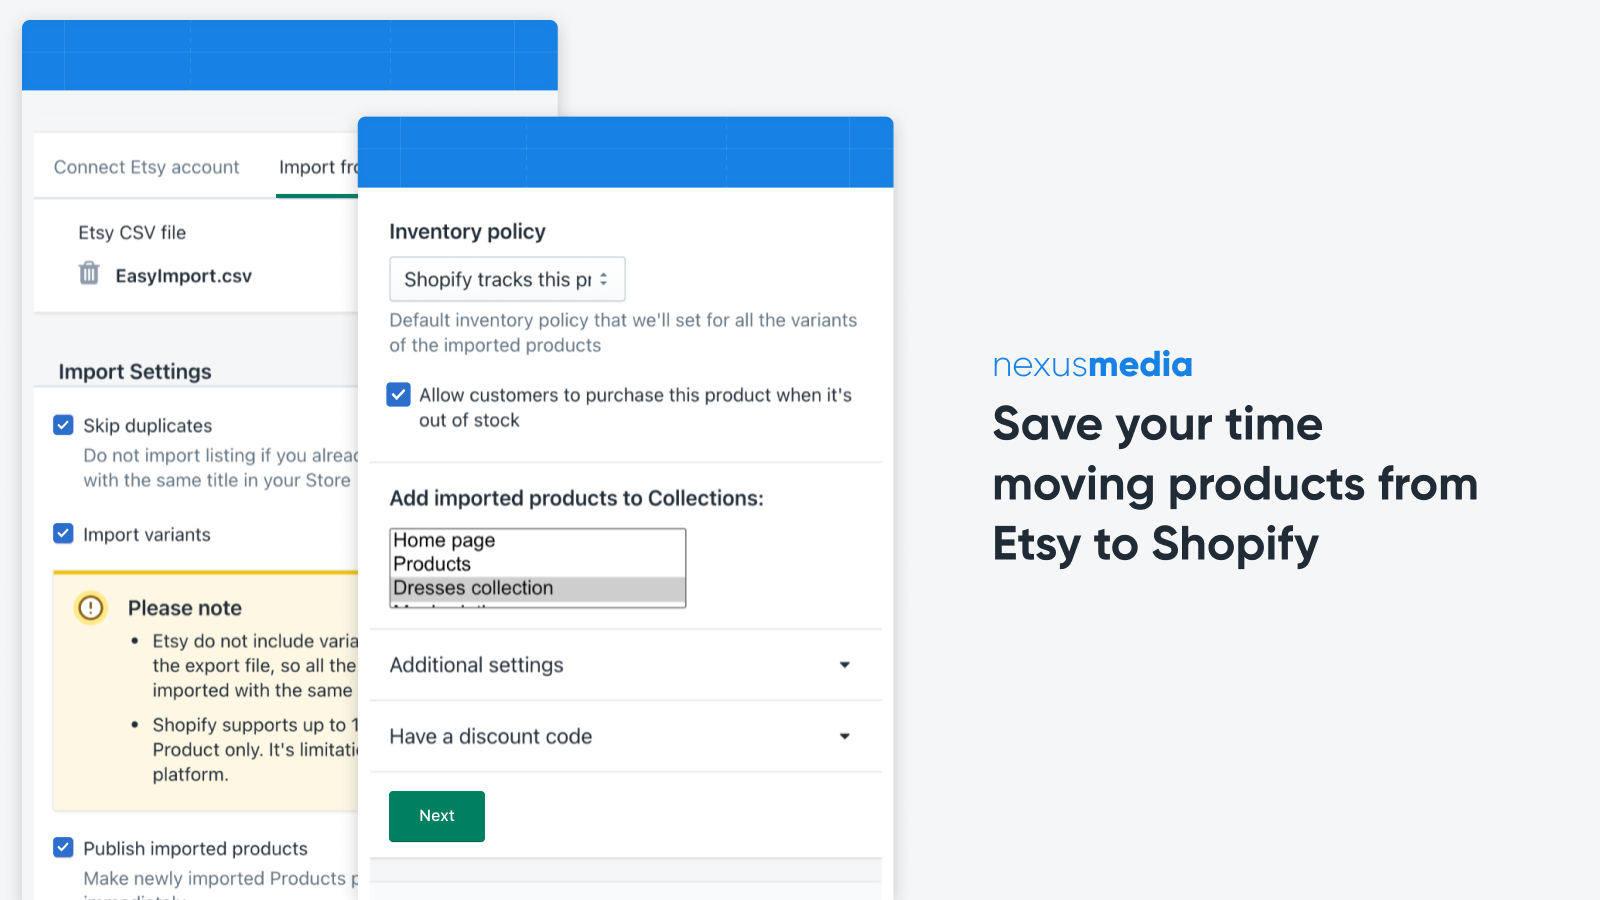 Save your time moving products from Etsy to Shopify